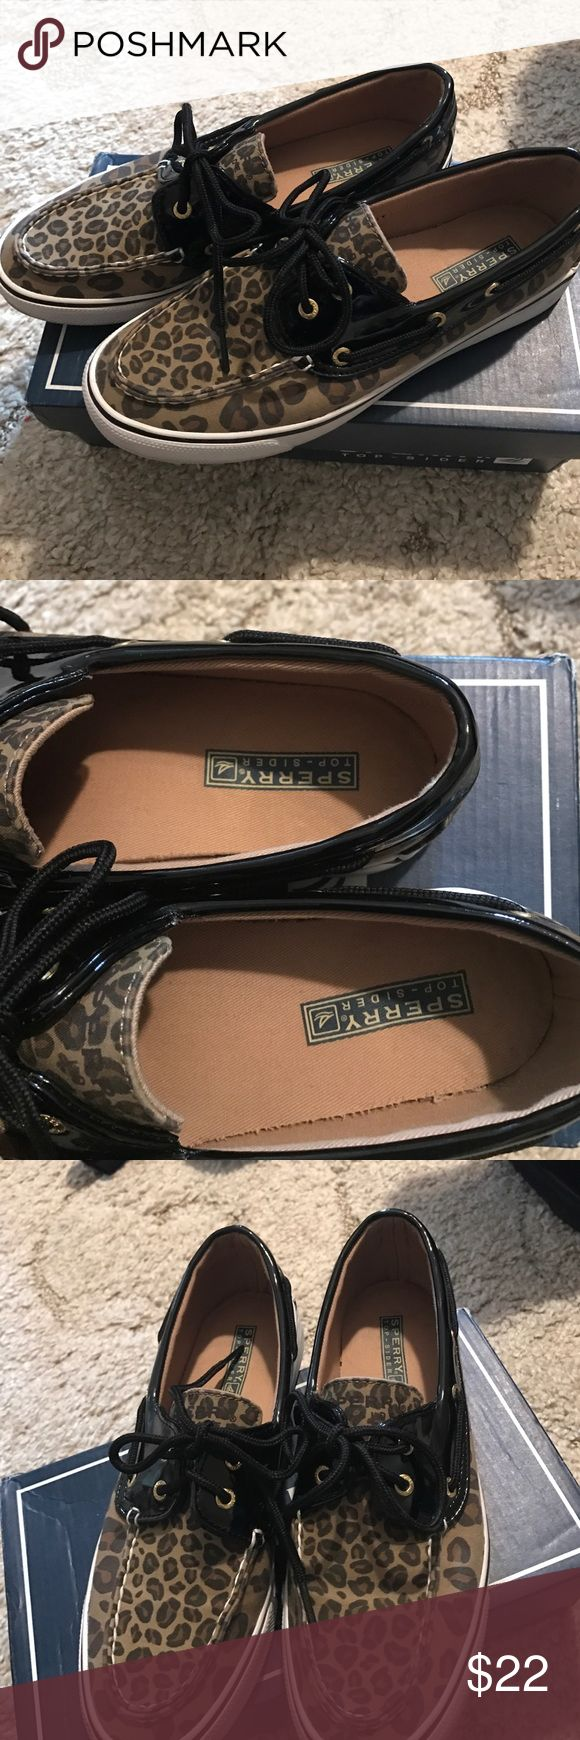 Leopard Sperry top siders Leopard print Sperry Top-siders size 8 great condition Sperry Top-Sider Shoes Flats & Loafers